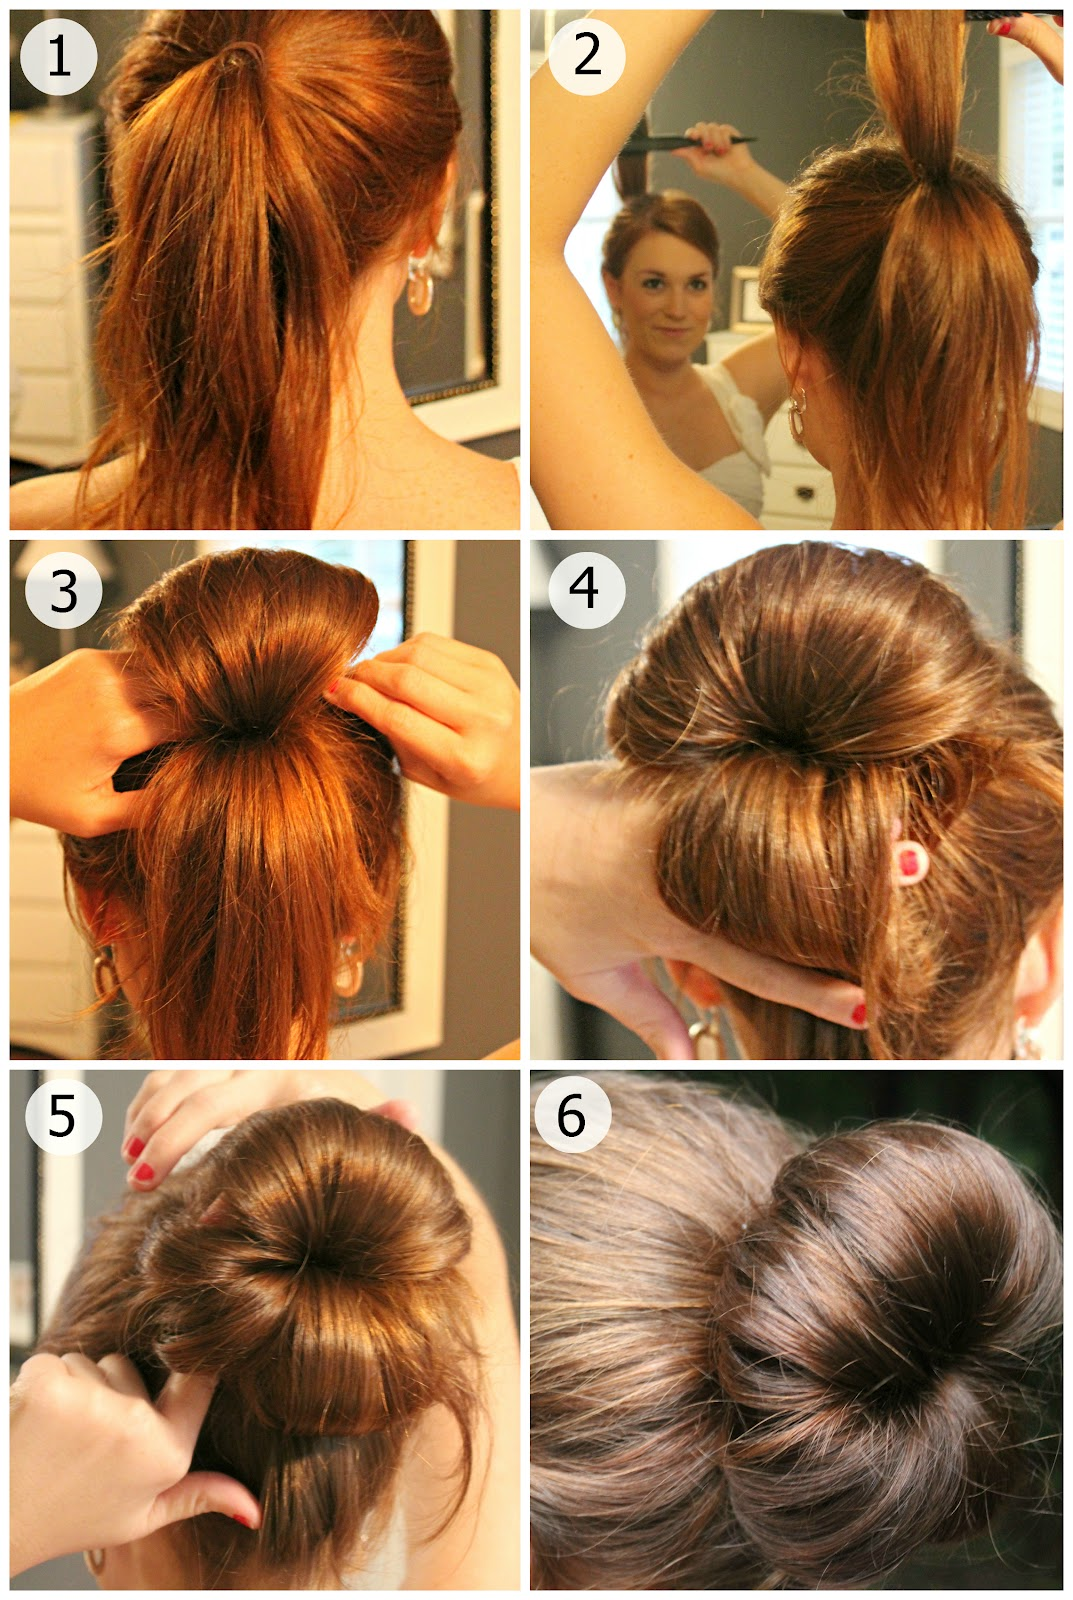 Hair tutorial the fun bun carolina charm i have really thin hair so the fun bun is the only bun that doesnt look super puny and awkward on me i hope this tutorial makes sense baditri Image collections